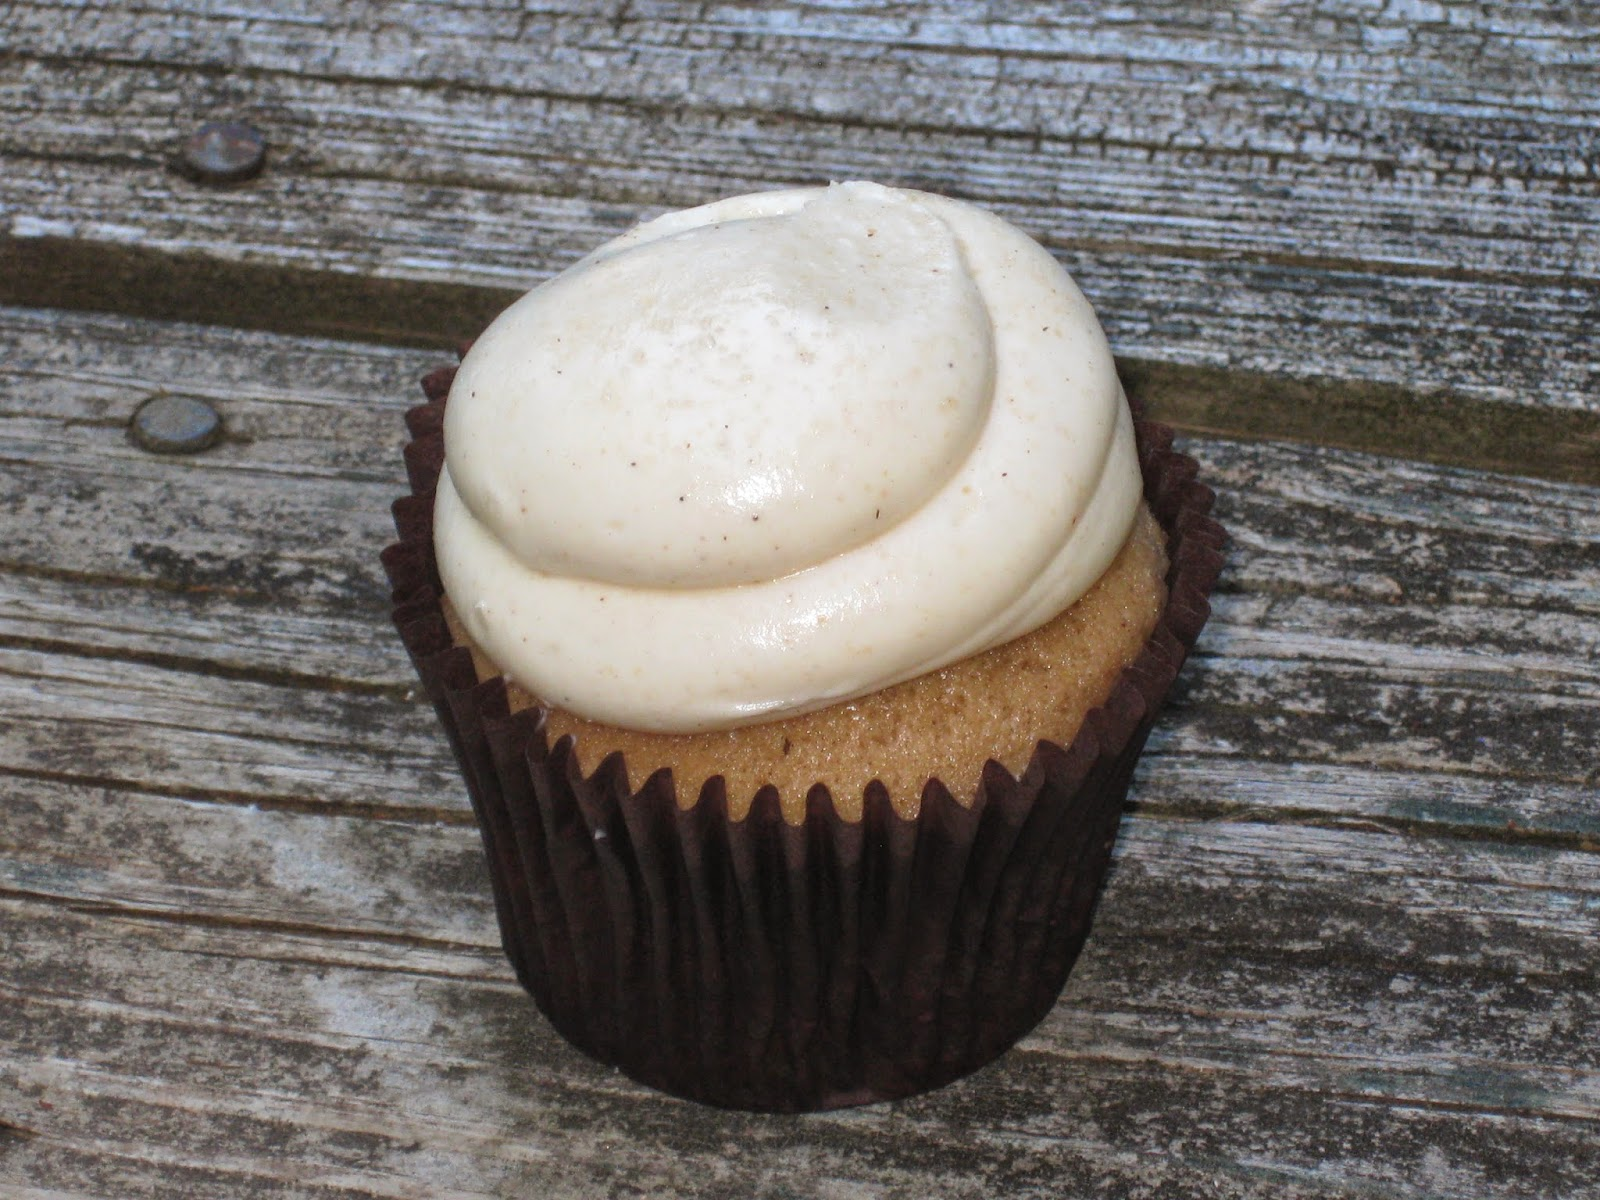 Snickerdoodle Cupcake from Flavory Cupcakery